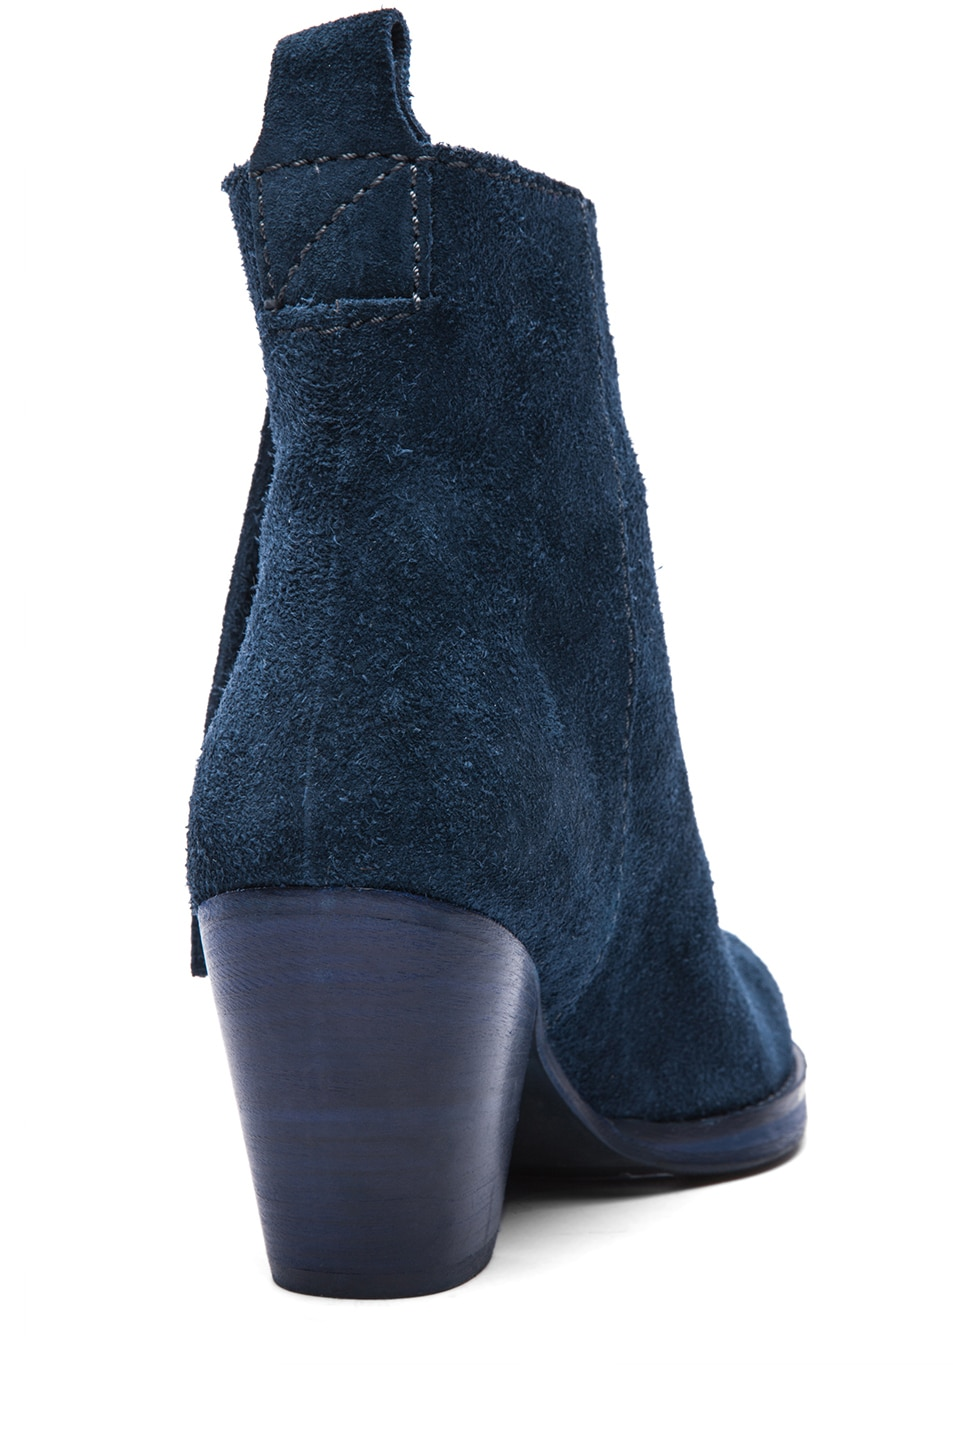 Image 3 of Acne Studios Pistol Suede Booties in Navy